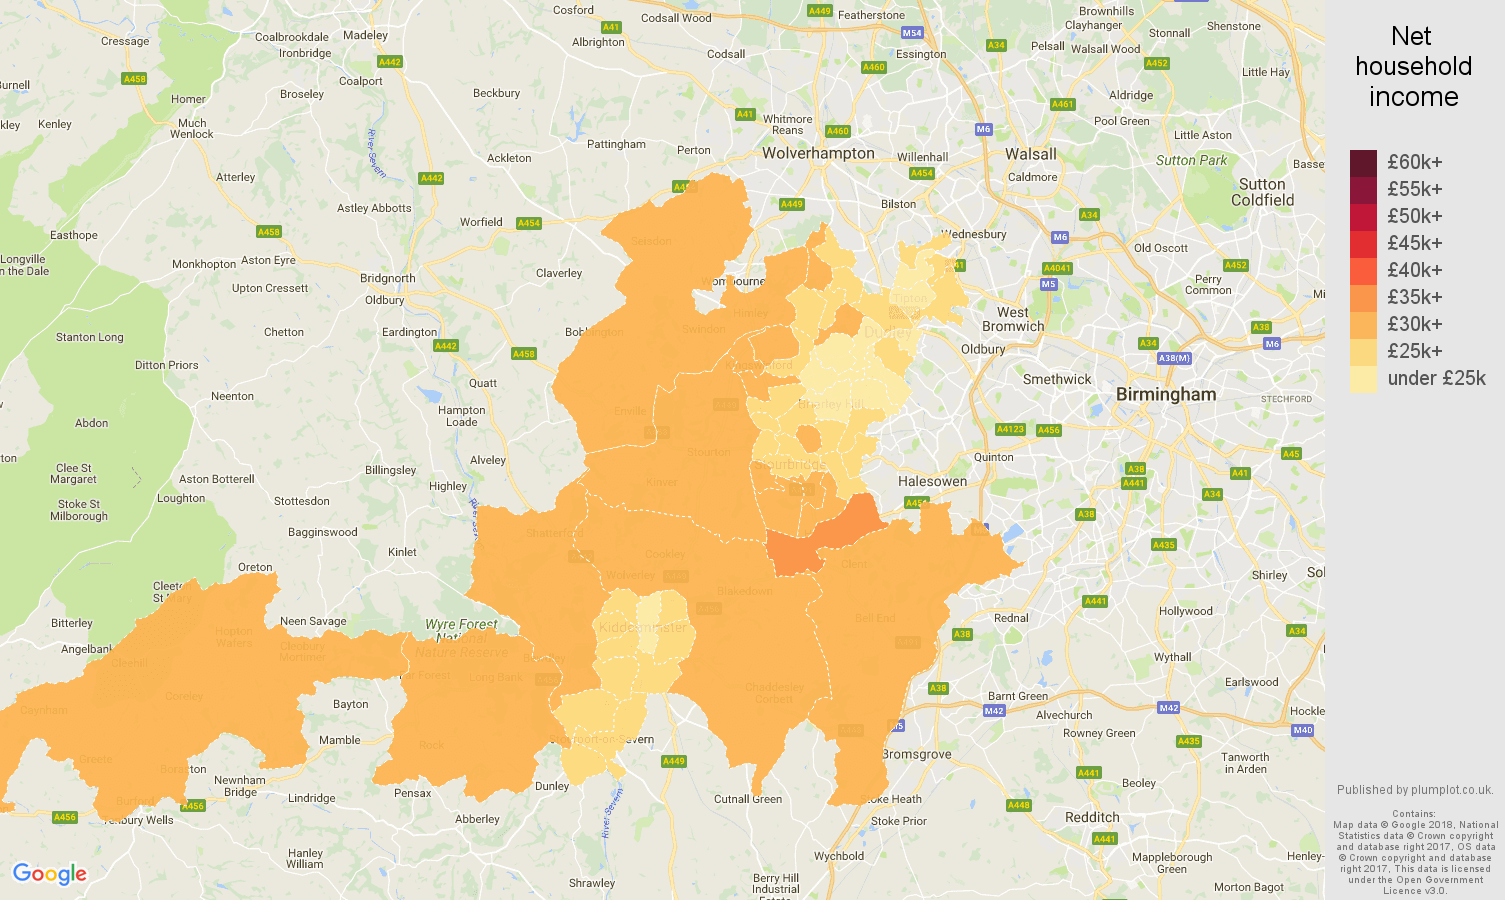 Dudley net household income map